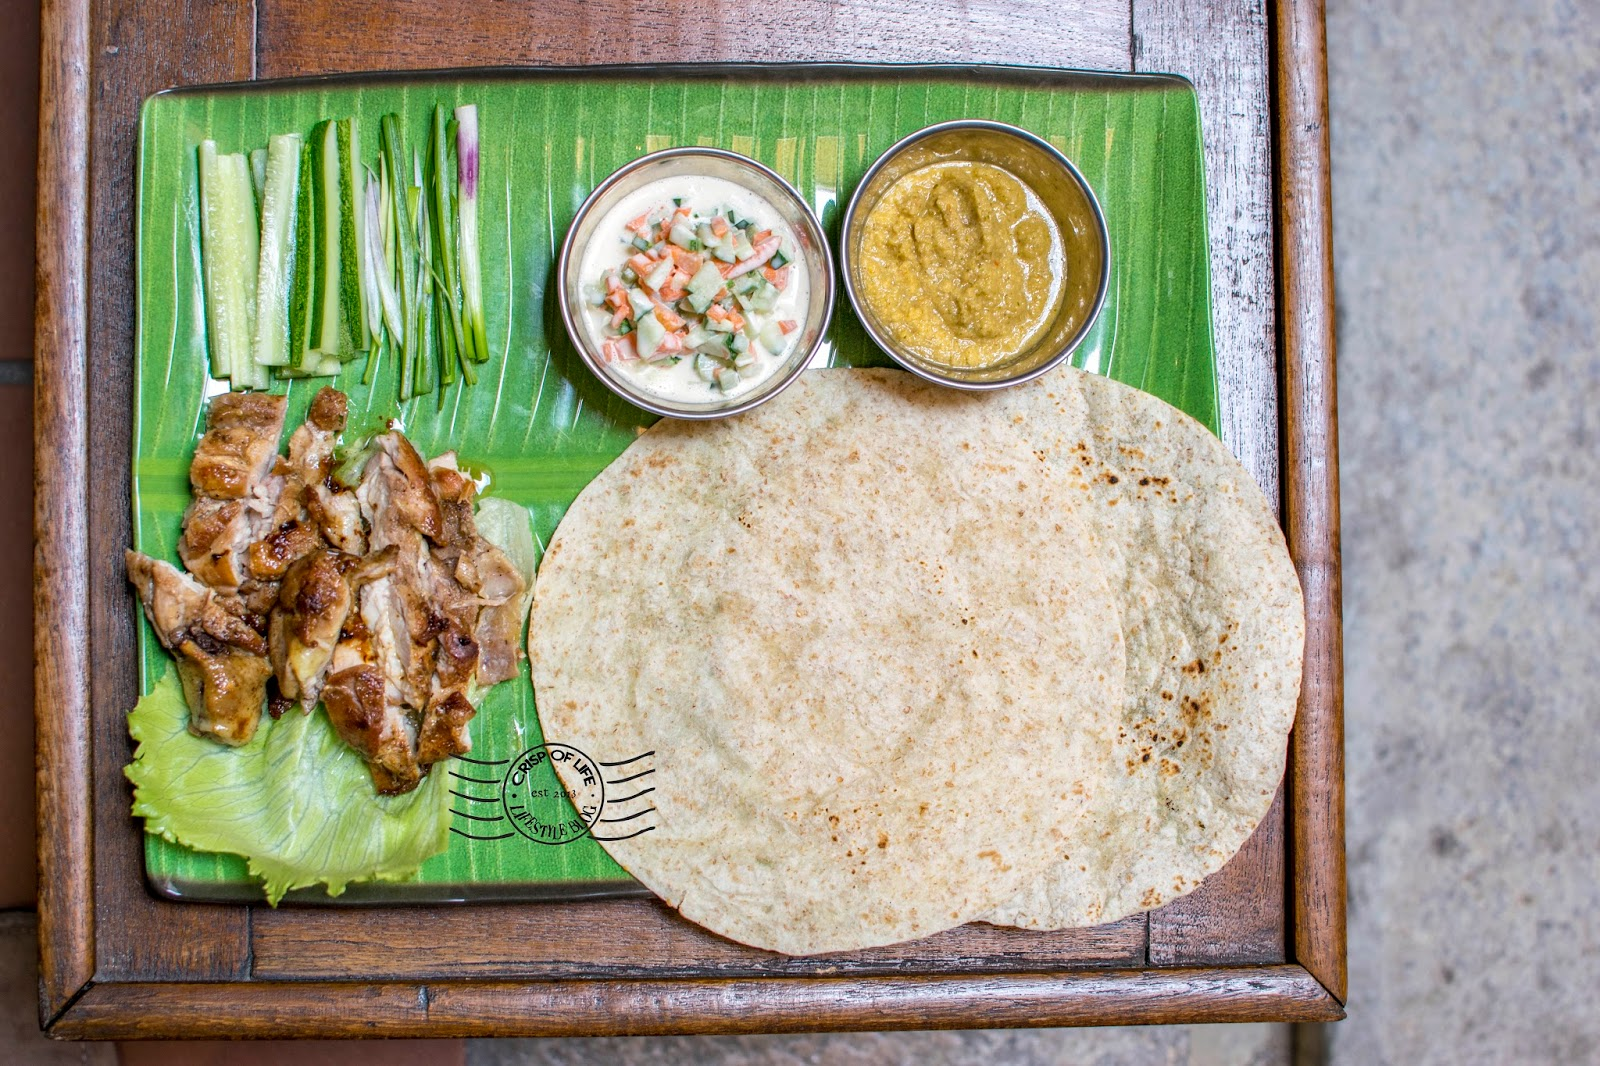 Northern Indian food in Penang